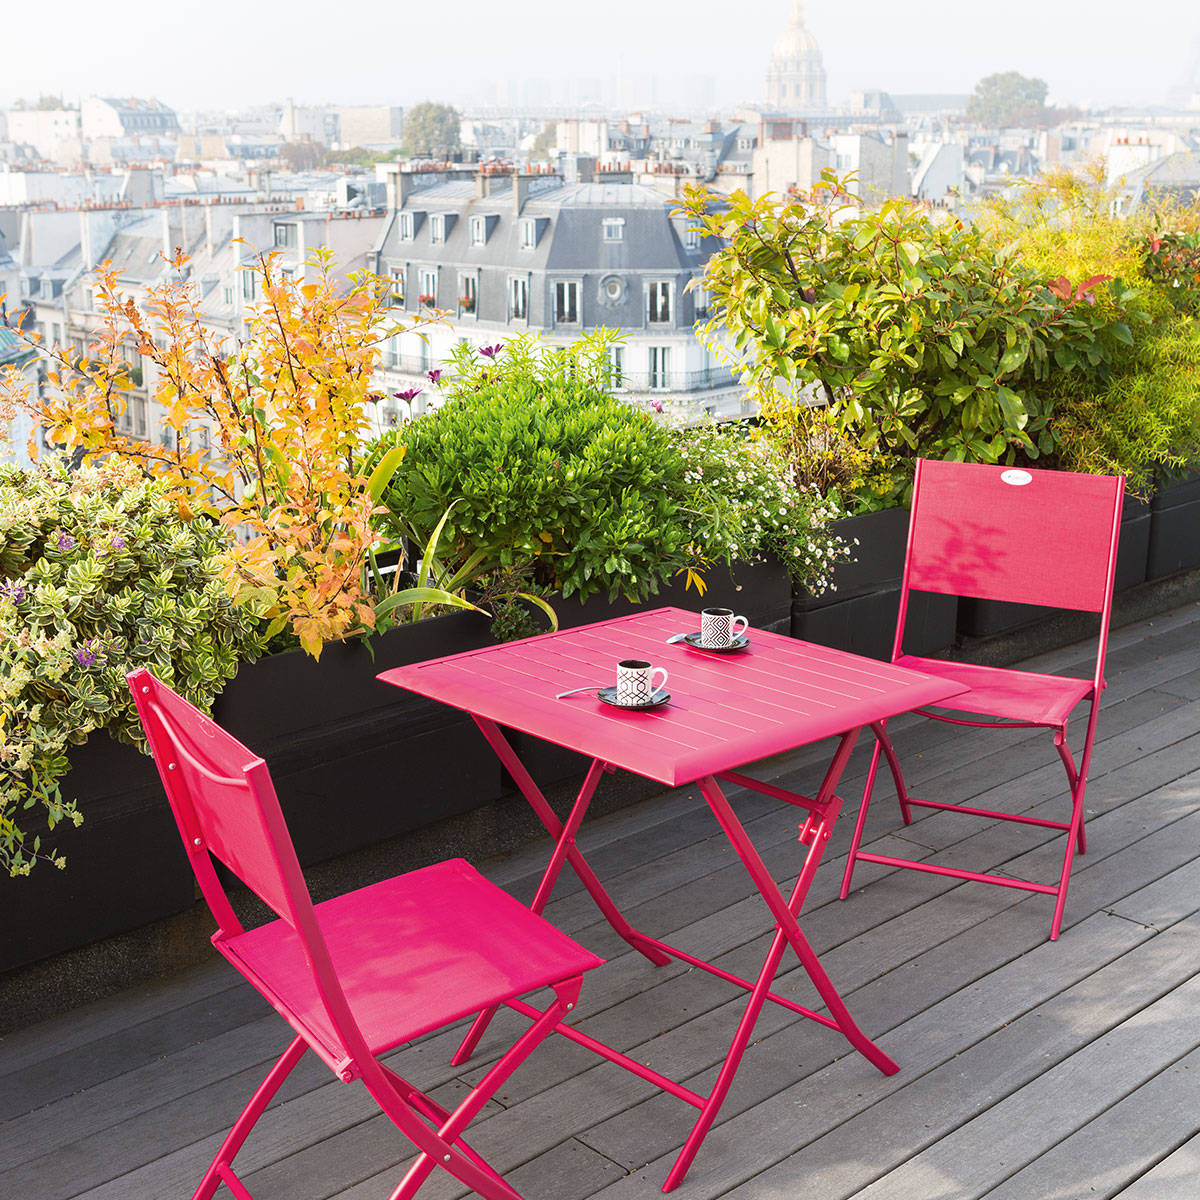 Petite Table De Balcon Pas Cher Chaise De Balcon Table Chaise Balcon Table Et Chaise De